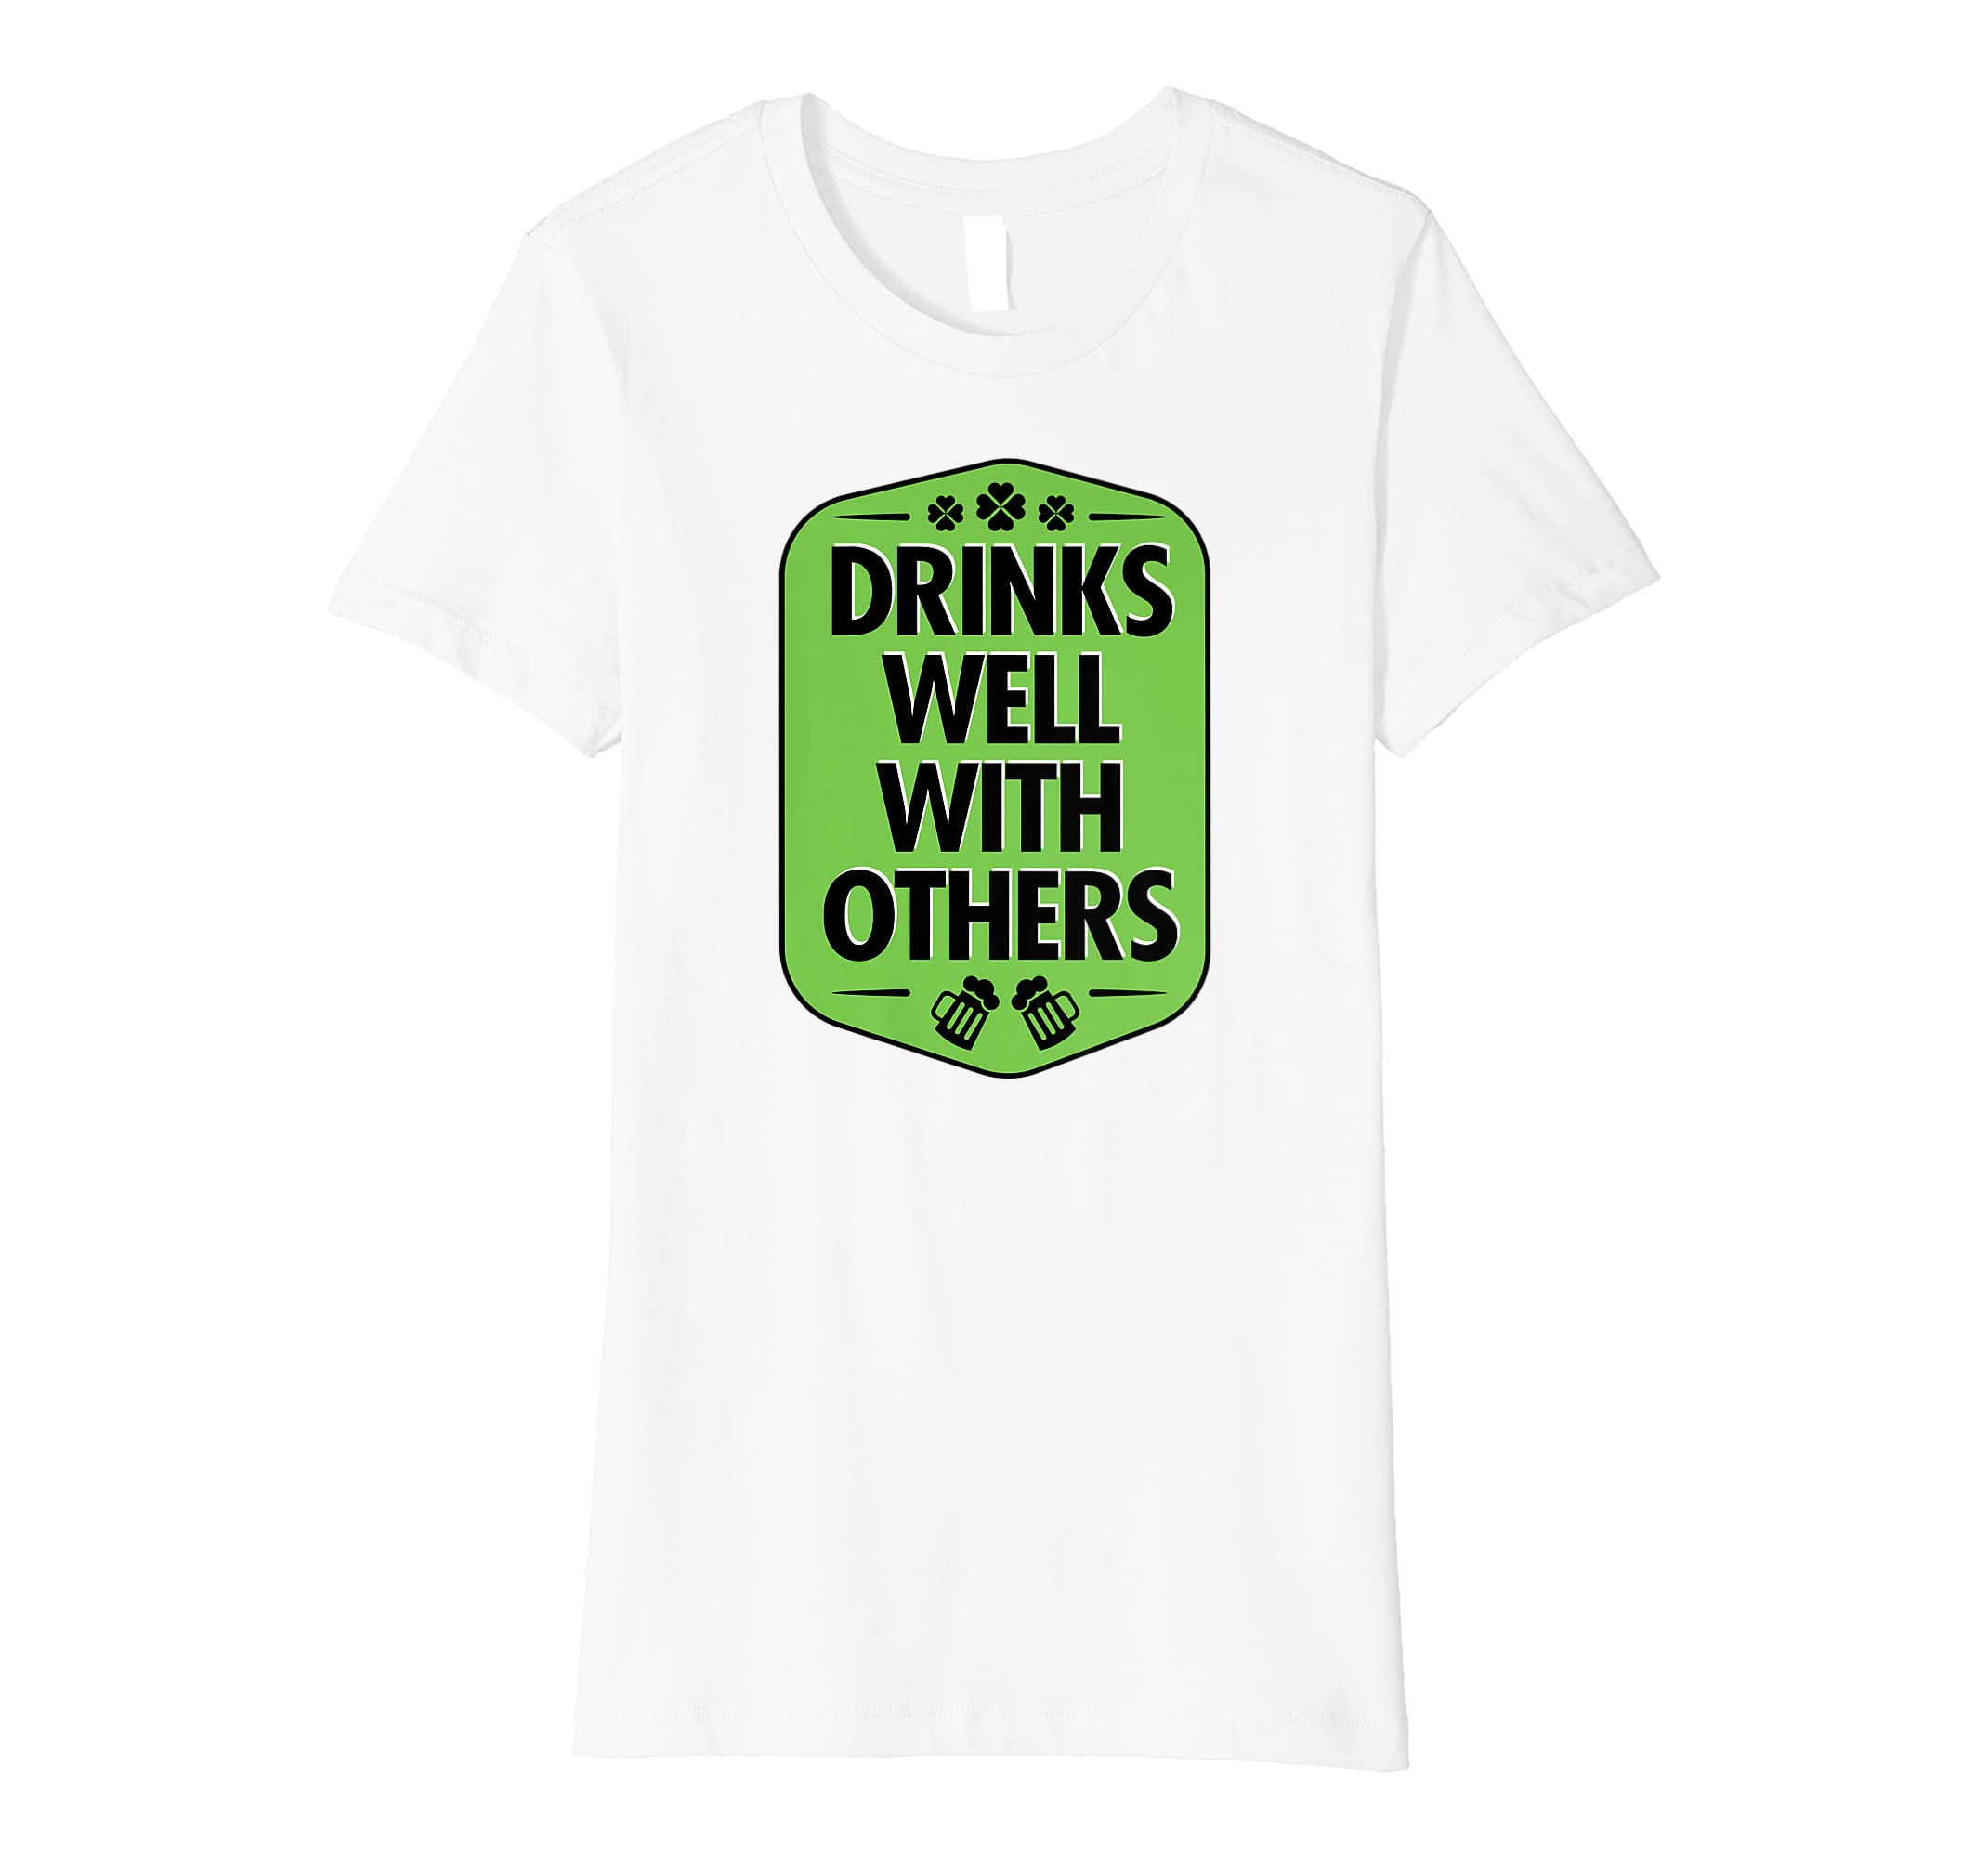 7e00a3ee5 Amazon.com: Drinks Well With Others Funny St Patricks Day T-Shirt: Clothing